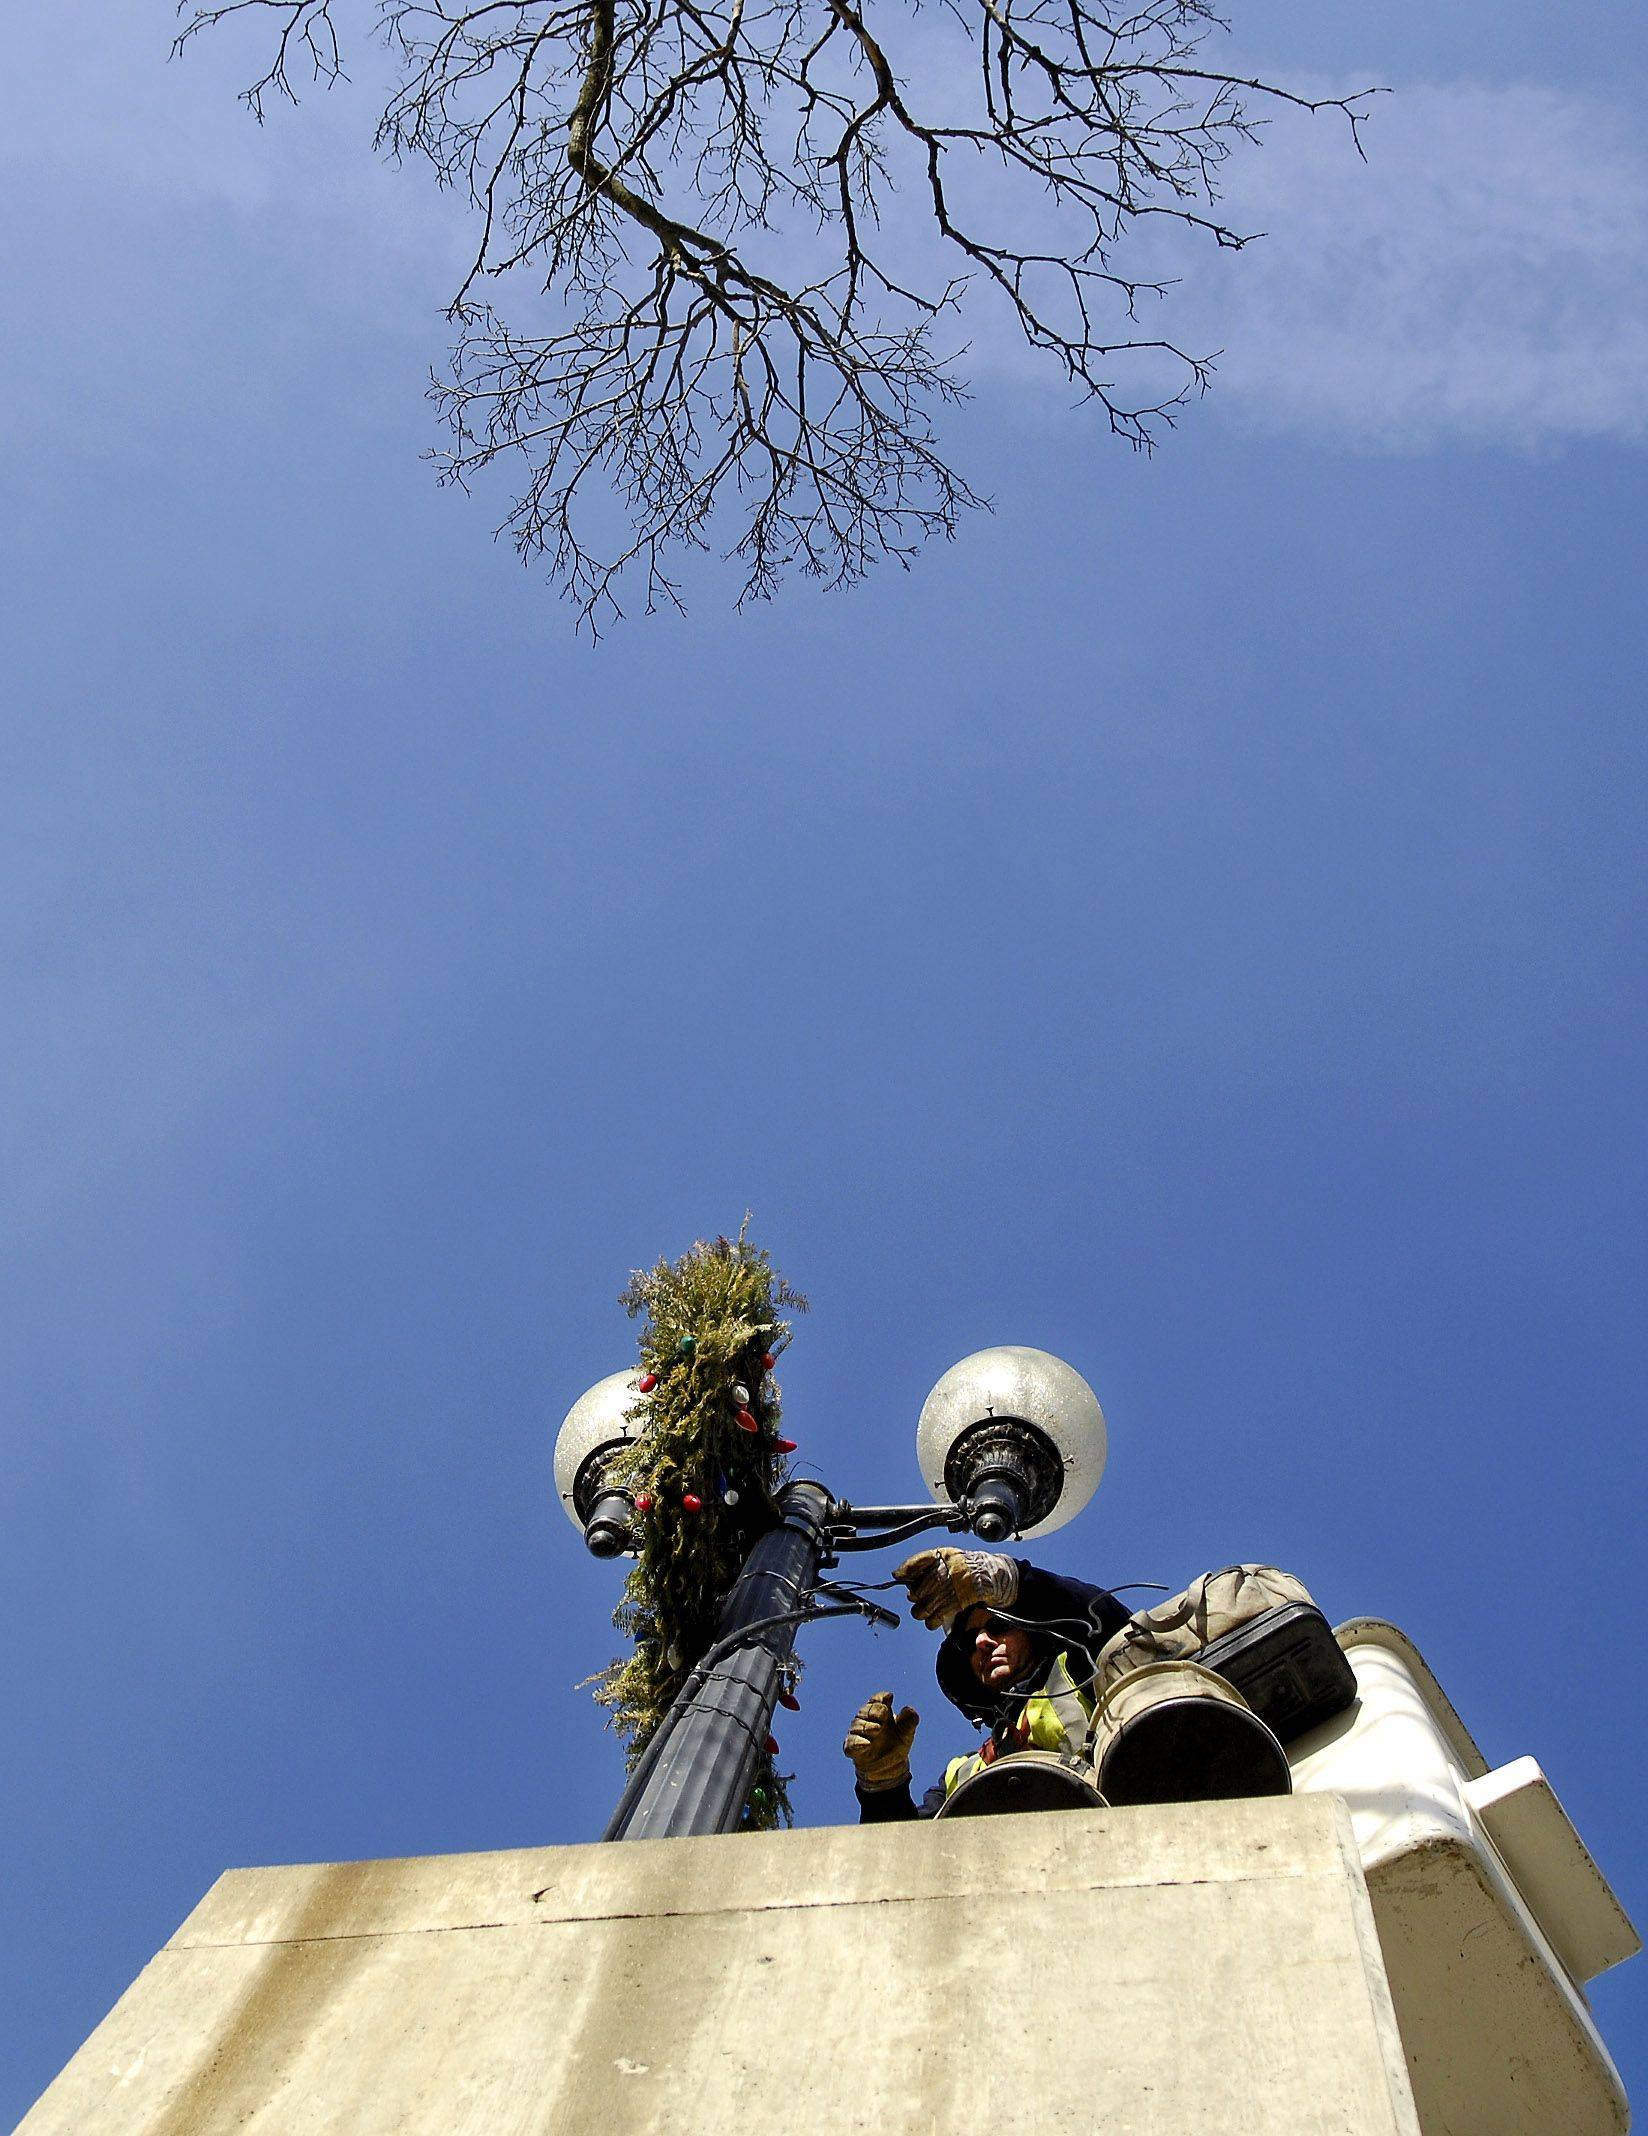 City of Geneva worker Jeff Wilger uses a cherry picker to take down a holiday wreath from a lamp post on the State Street bridge Monday afternoon. Wilger, who said he has worked for the city for 21 years, said it was a few days work to get everything down from downtown out to Kirk Road.